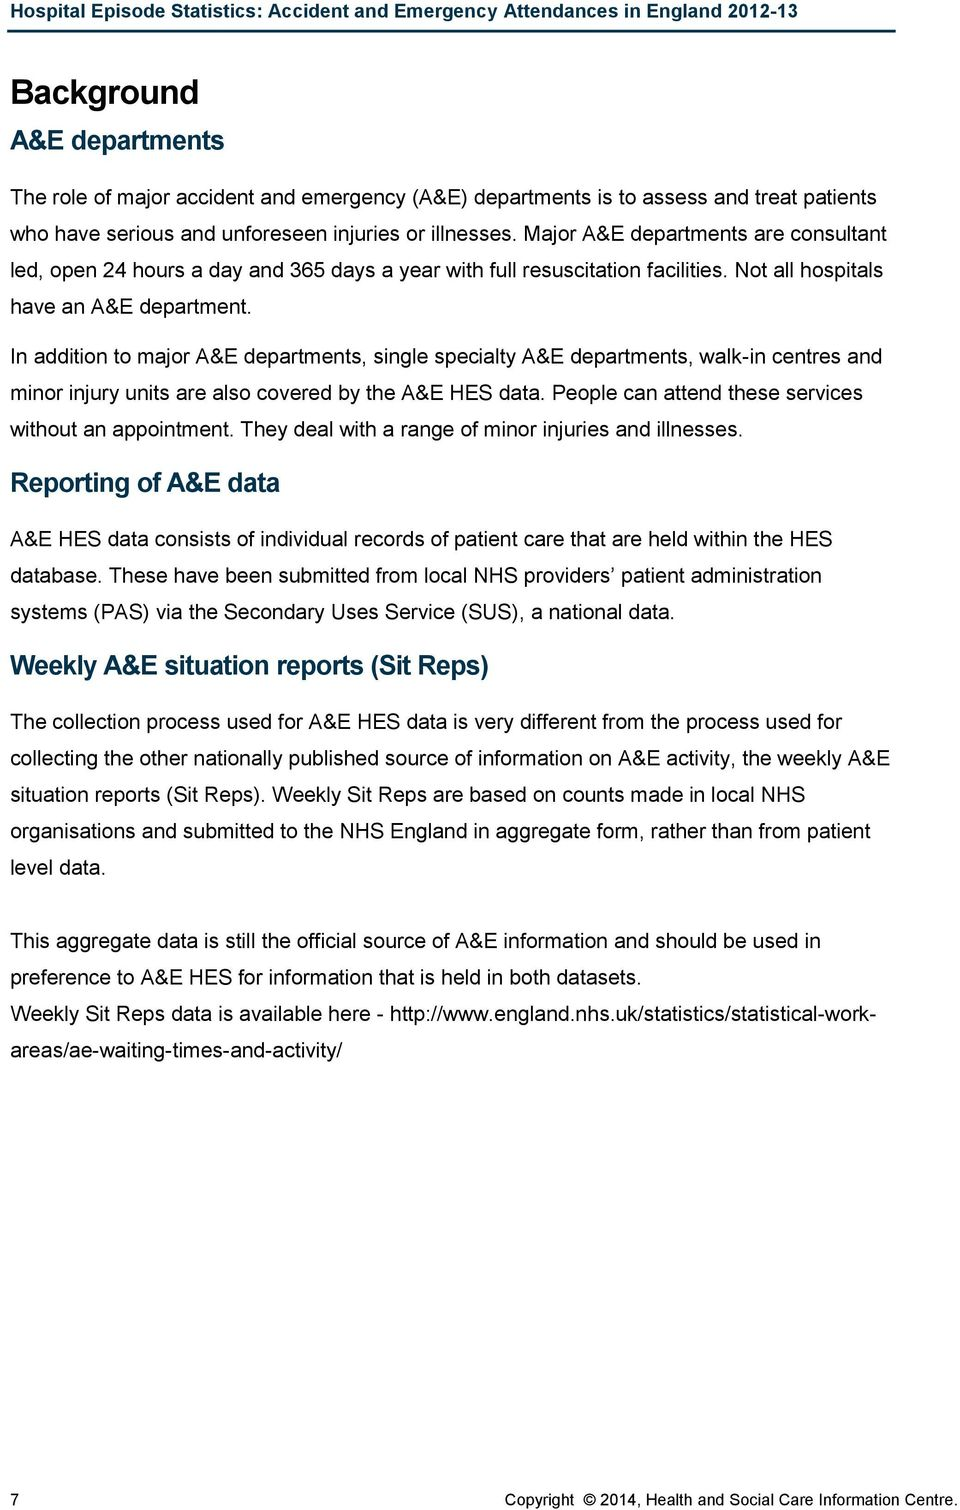 In addition to major A&E departments, single specialty A&E departments, walk-in centres and minor injury units are also covered by the A&E HES data.